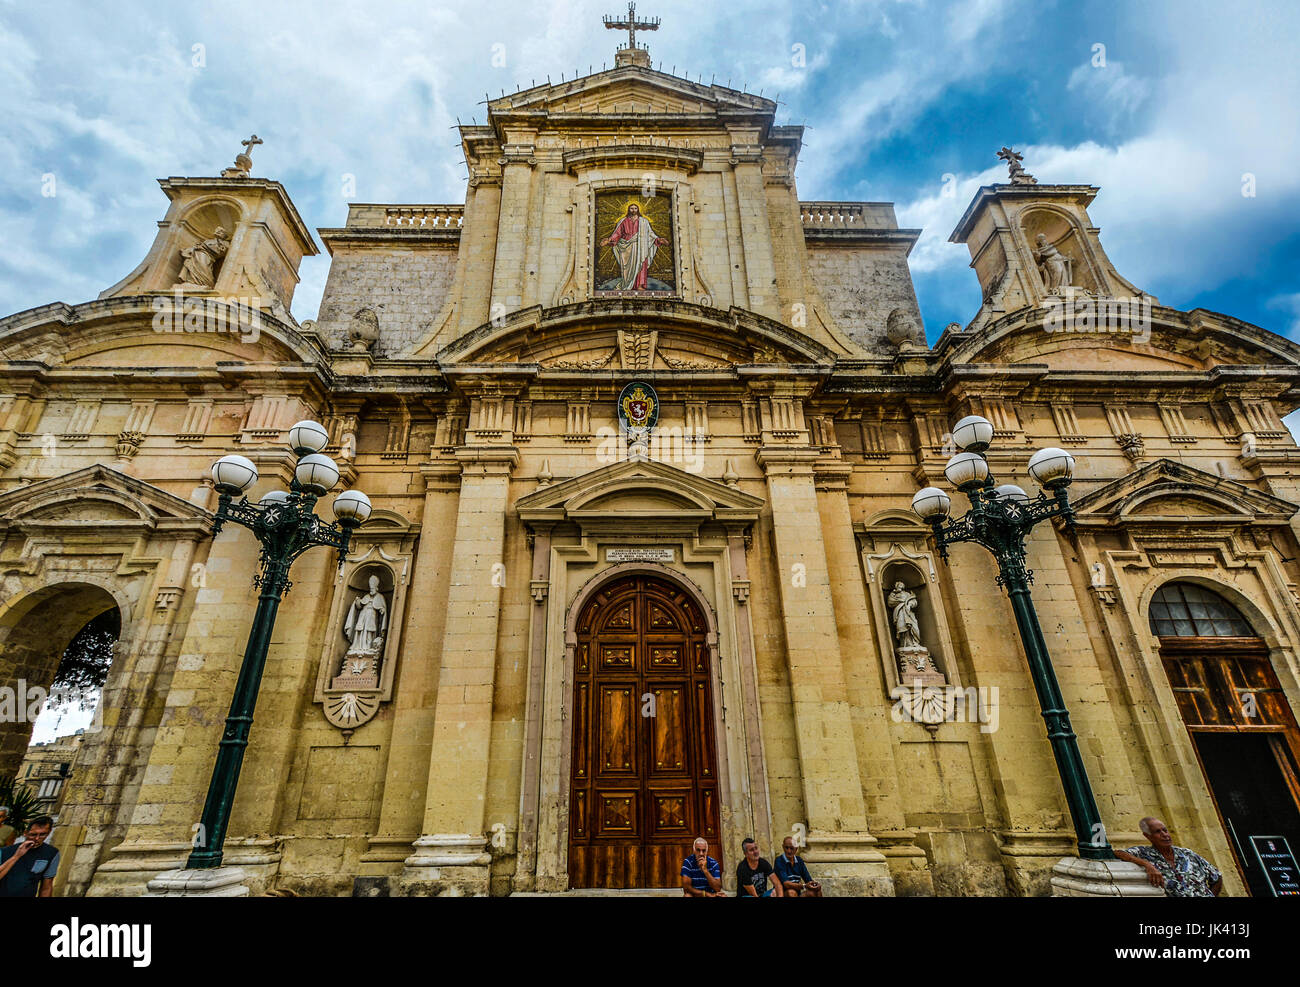 Gothic church or cathedral in the ancient city of Mdina on the Mediterranean island of Malta with locals sitting - Stock Image